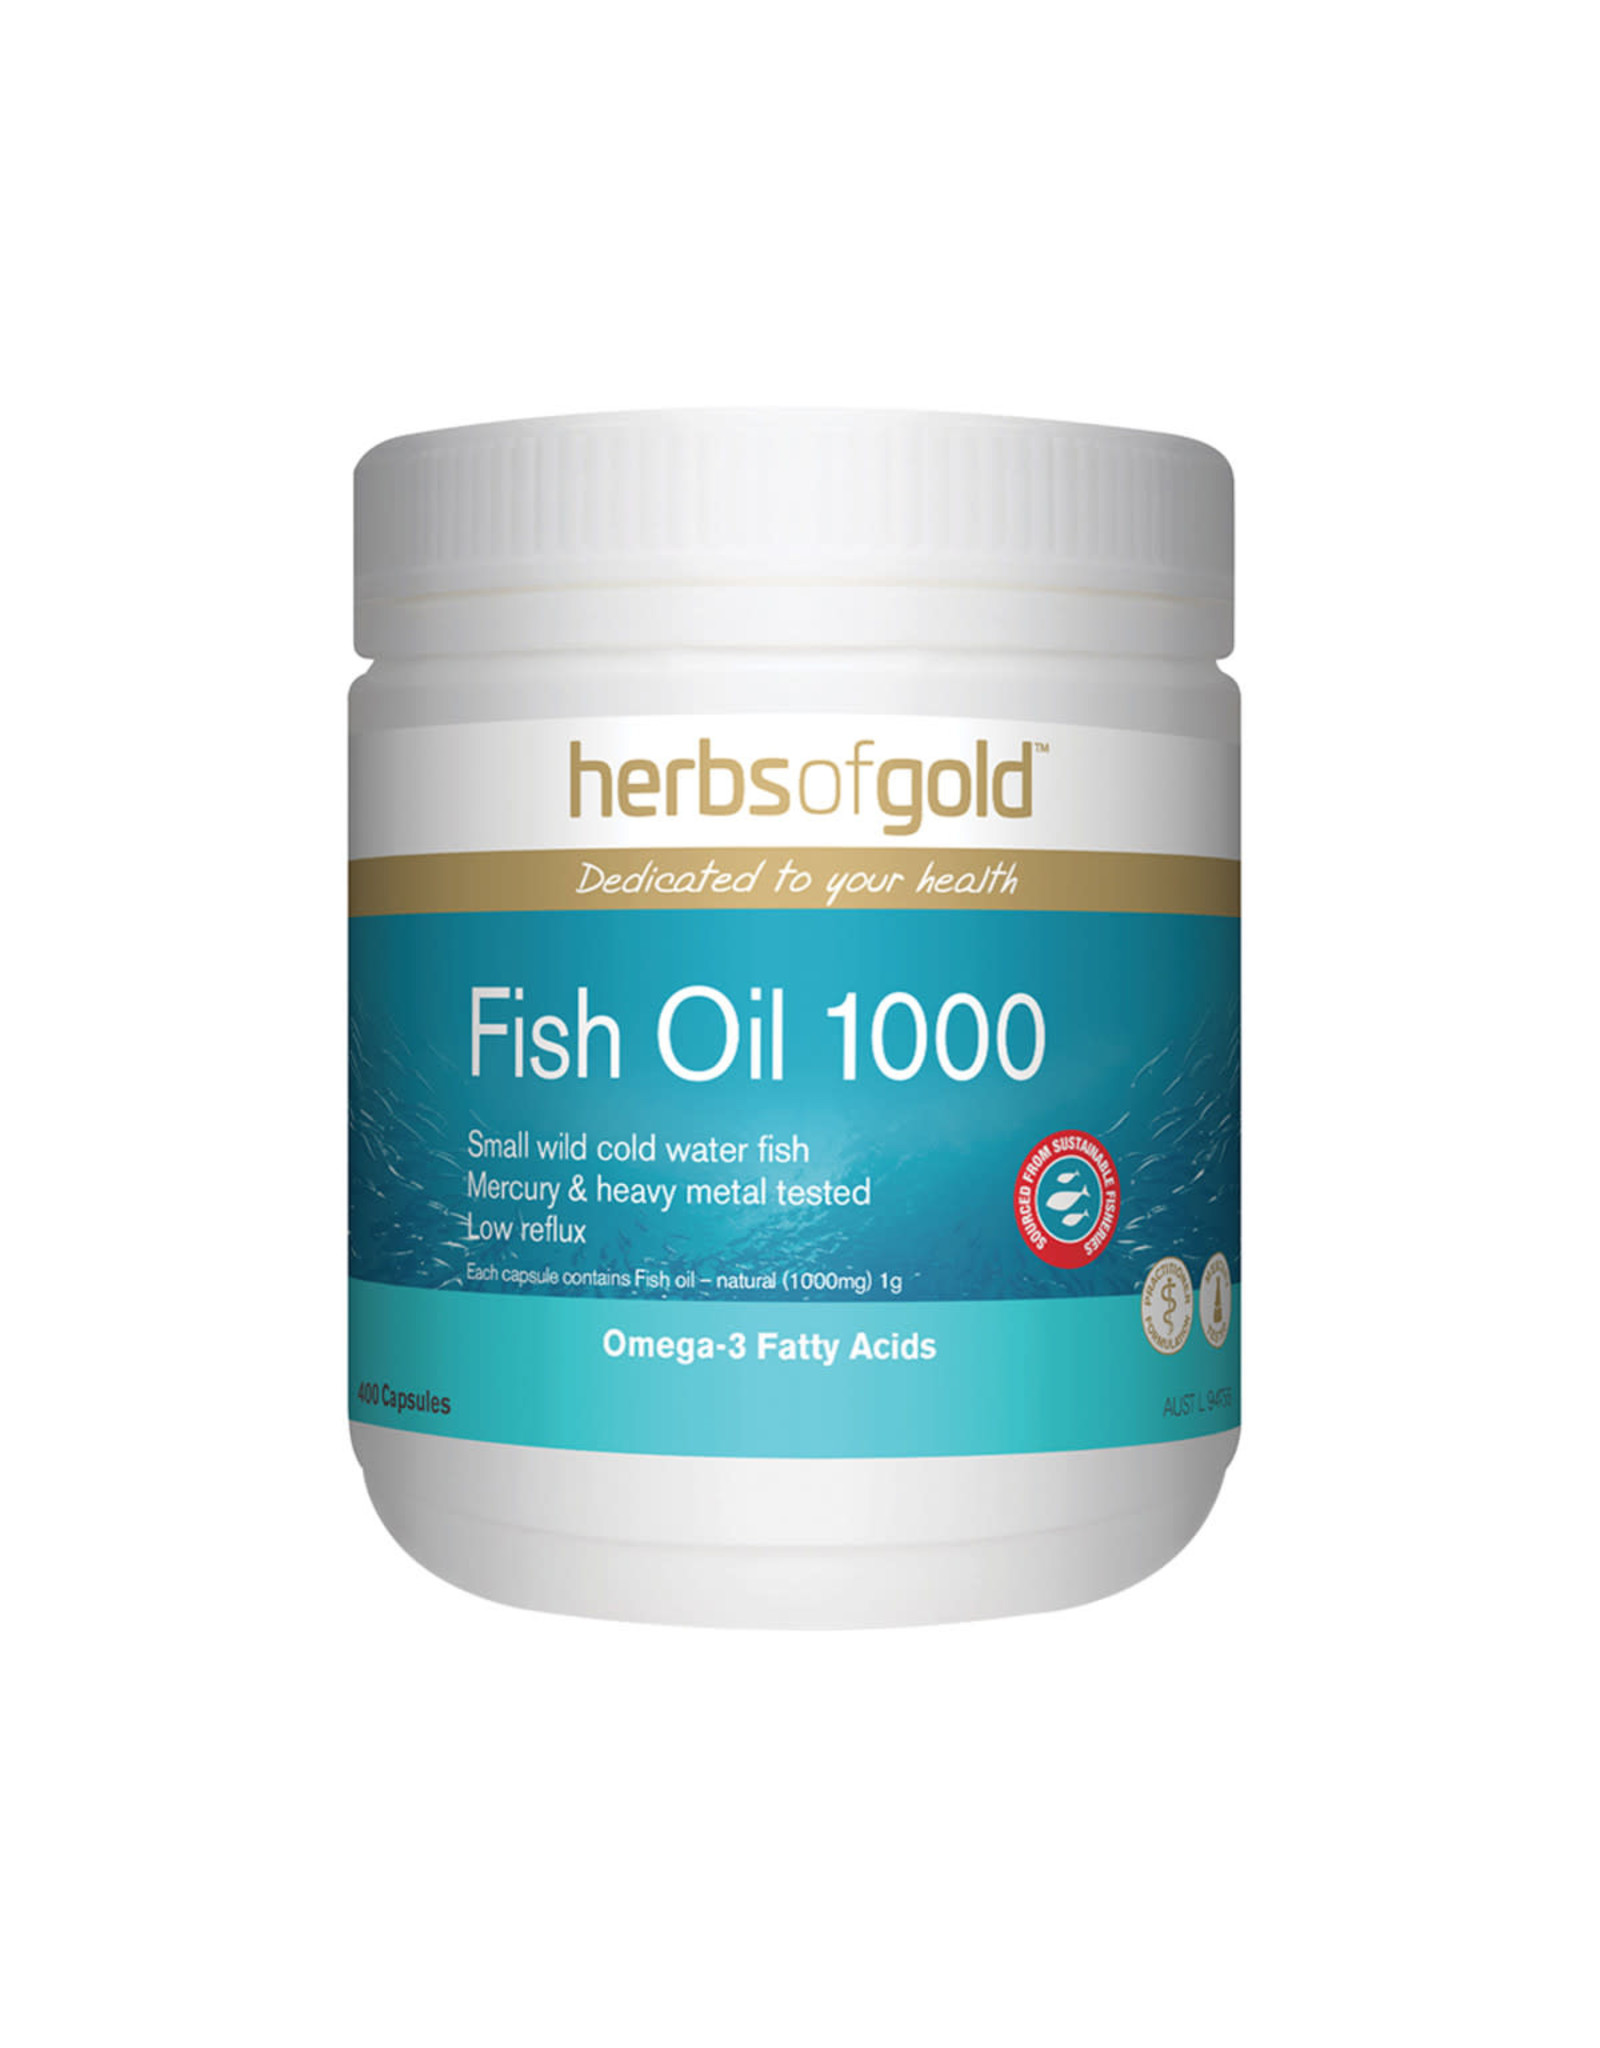 Herbs of Gold Fish Oil 1000 400c